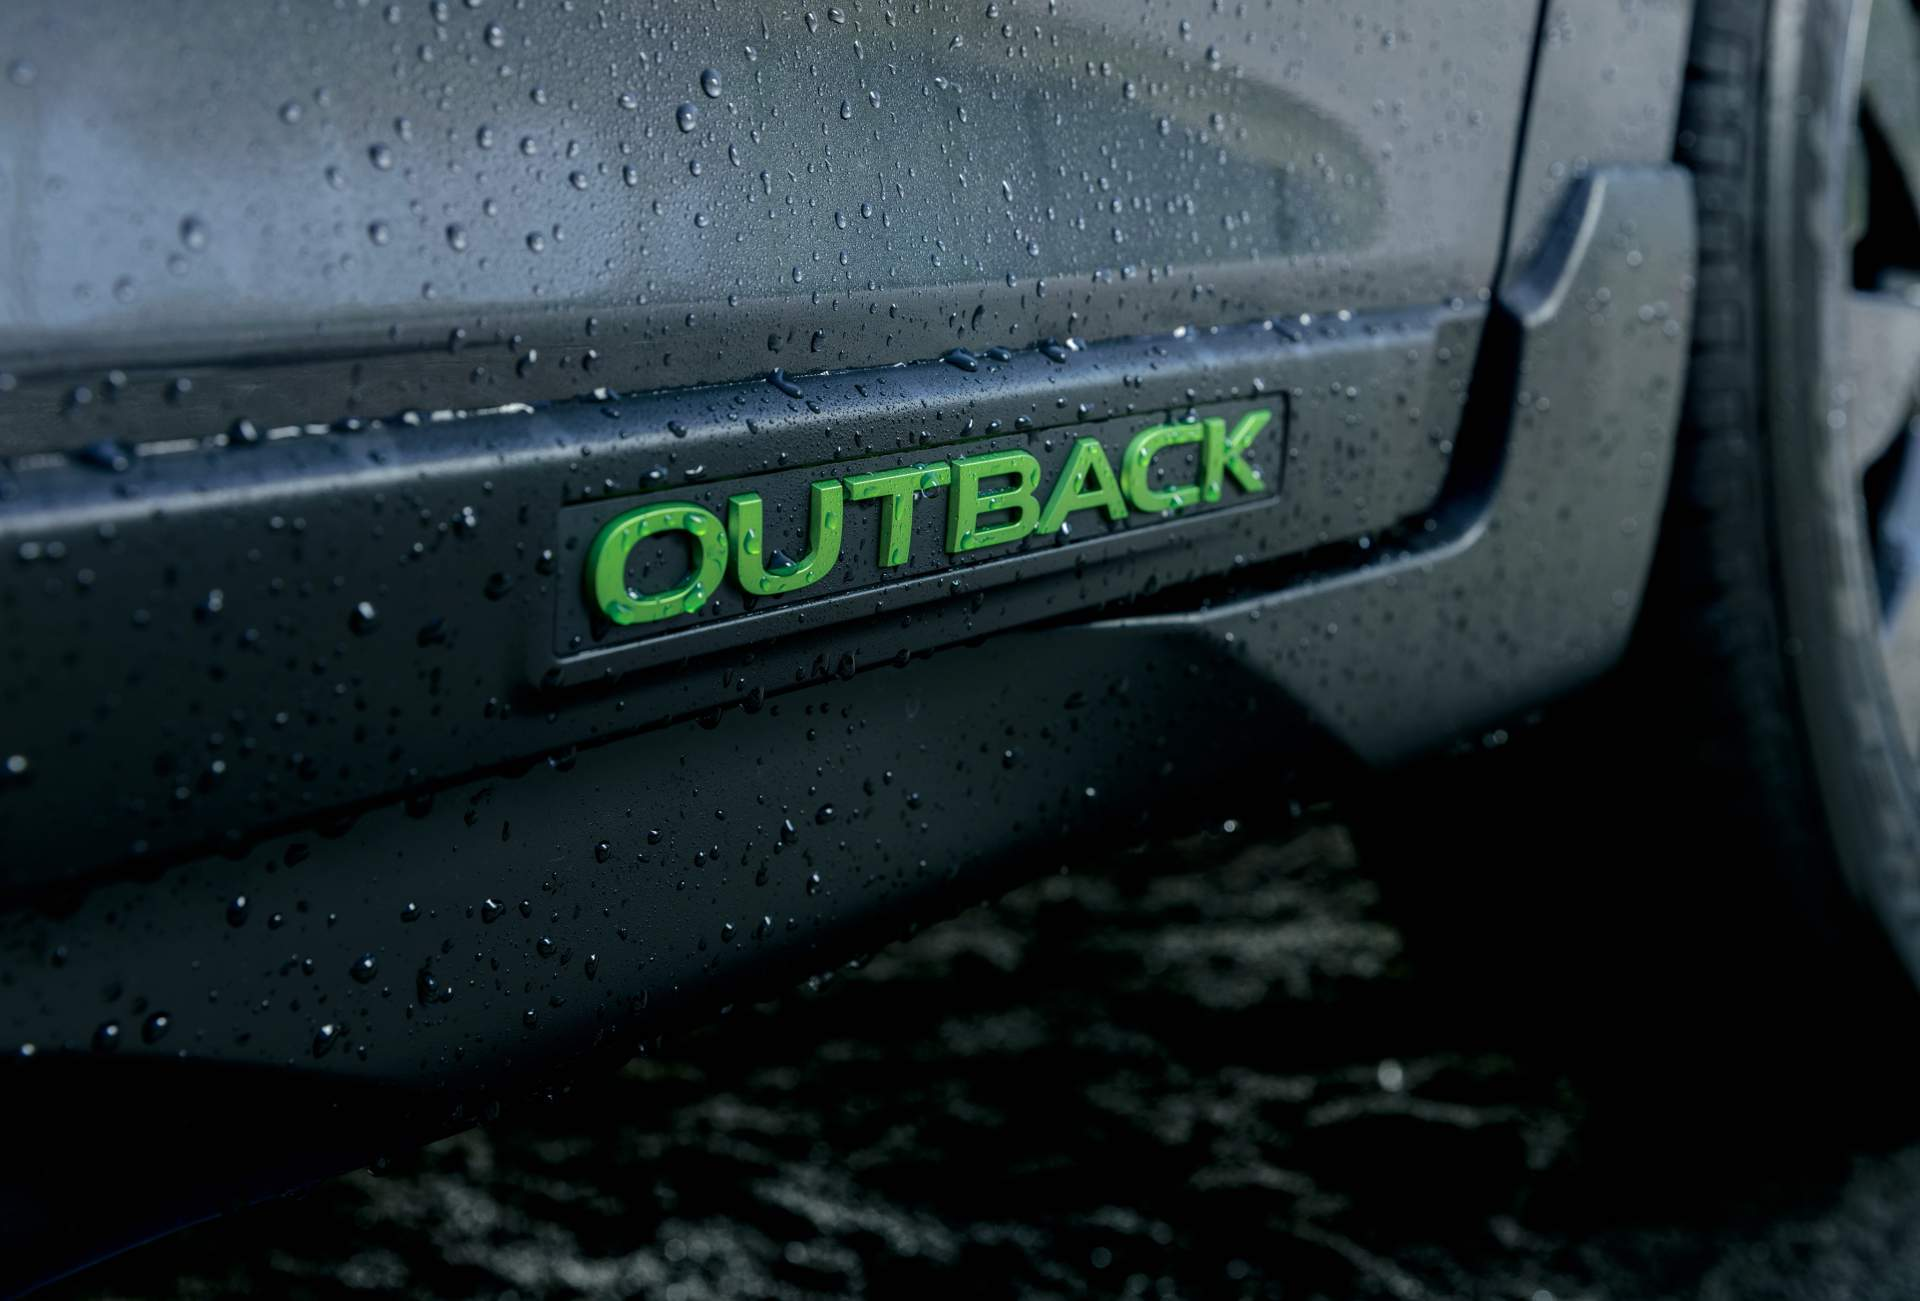 subaru-outback-x-break-dac-biet-6.jpeg